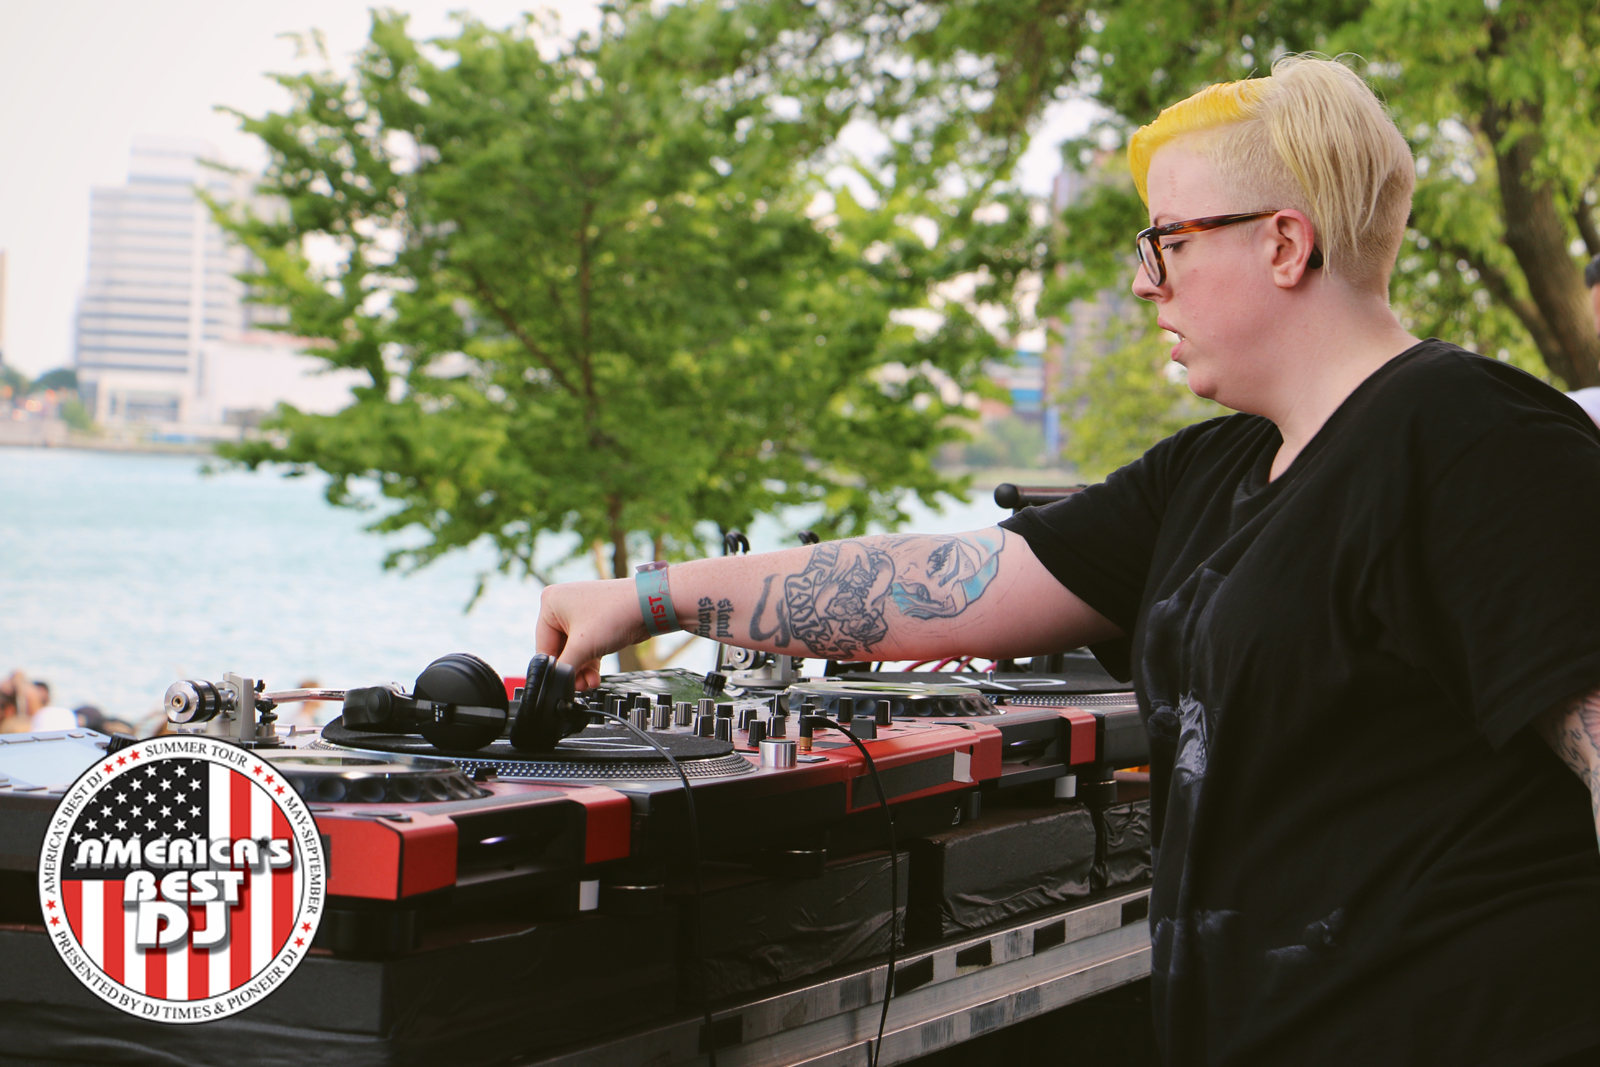 The Black Madonna's diverse selections proved popular to the RBMA crowd. | Photo: Adam Meyer